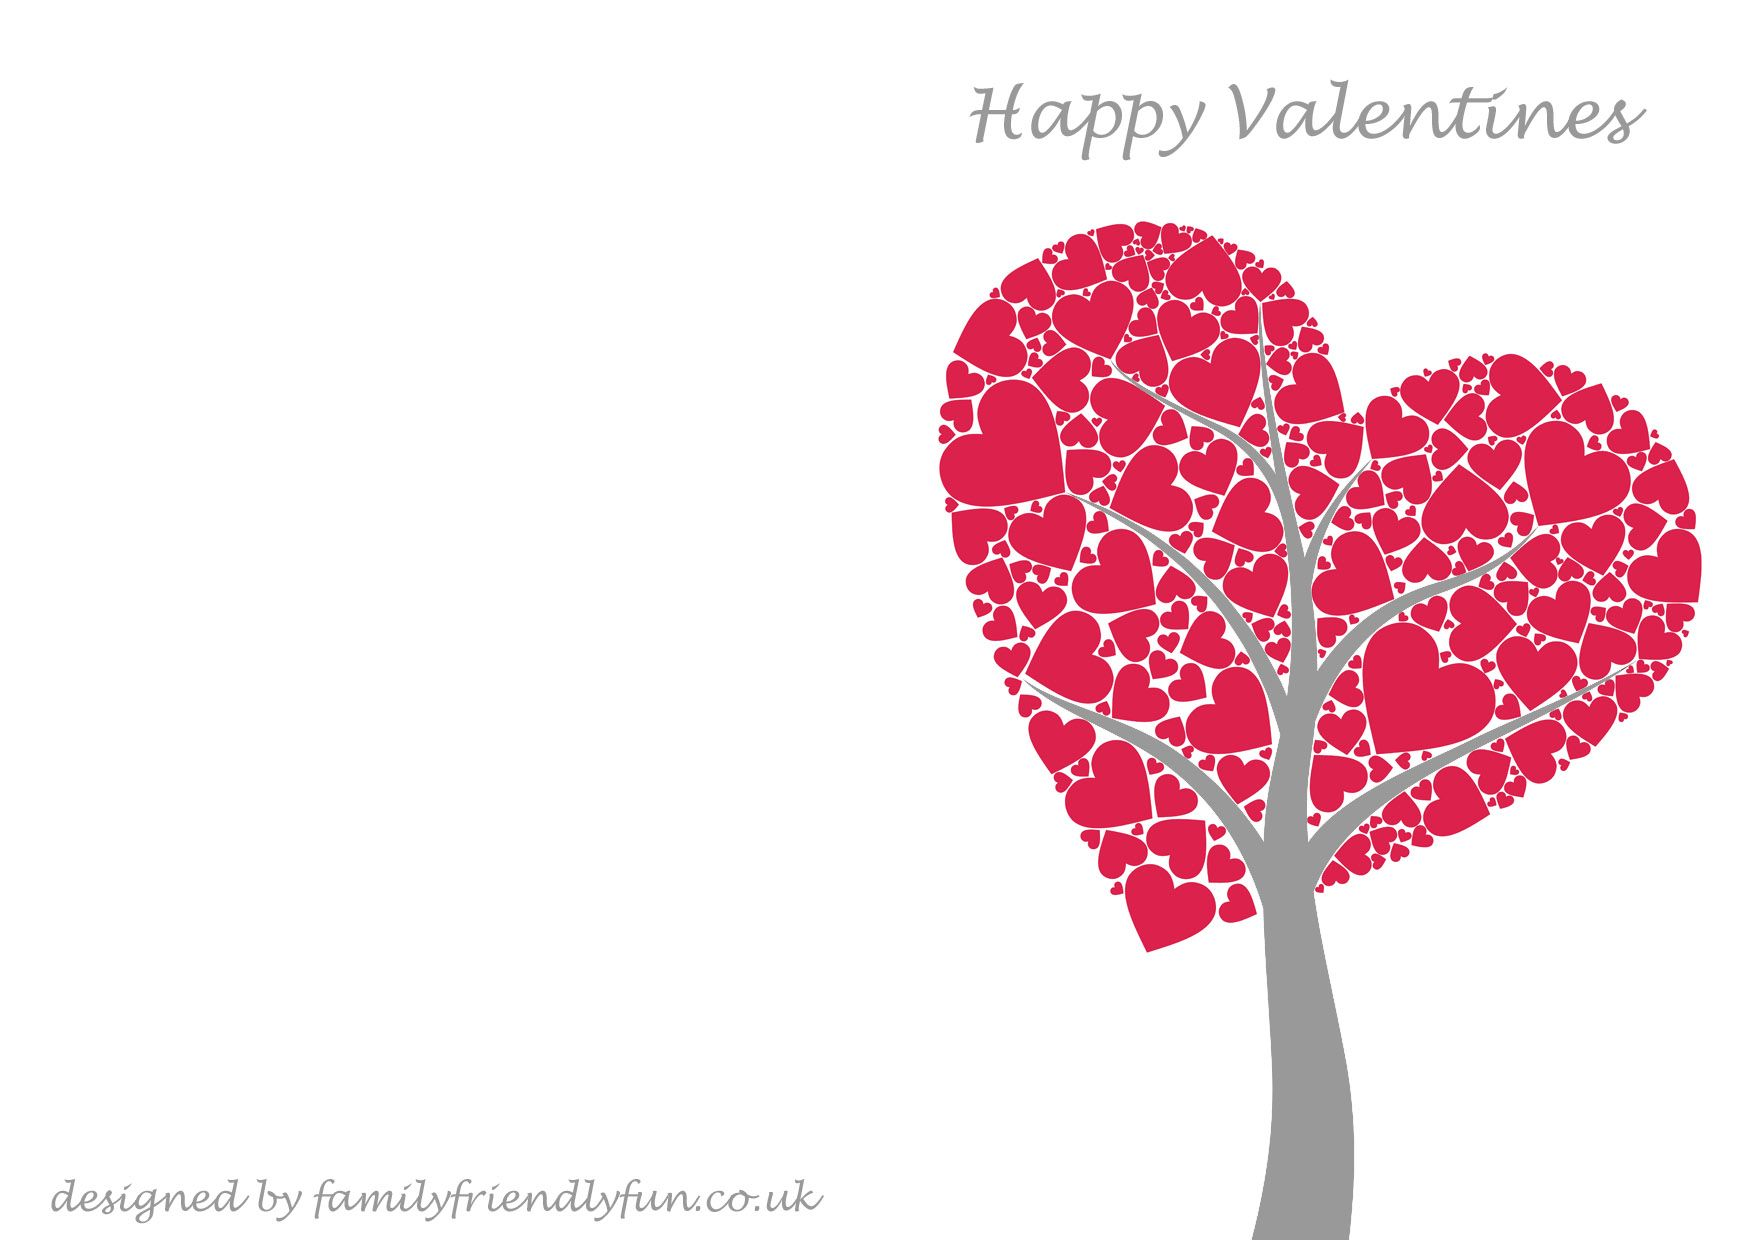 Templates For Greeting Cards At Home Cards Greeting Valentine Card – Print a Valentines Card